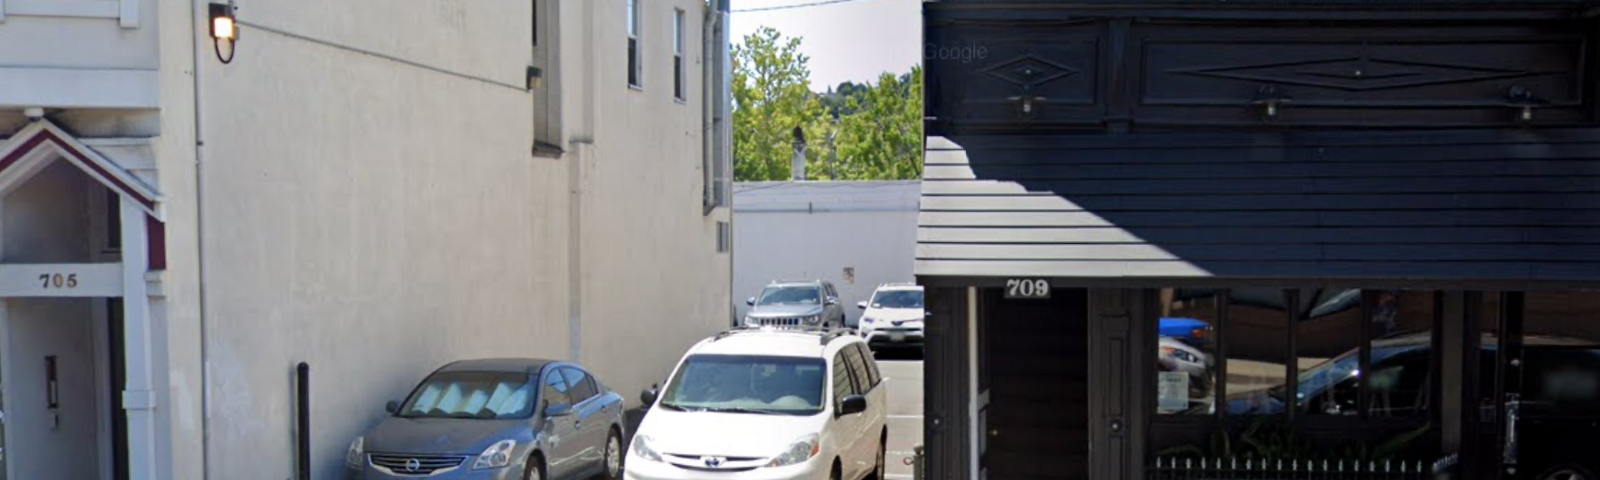 A parking lot on the 700 block of 4th Street in San Rafael, California, near where Ashley Yamauchi's body was discovered